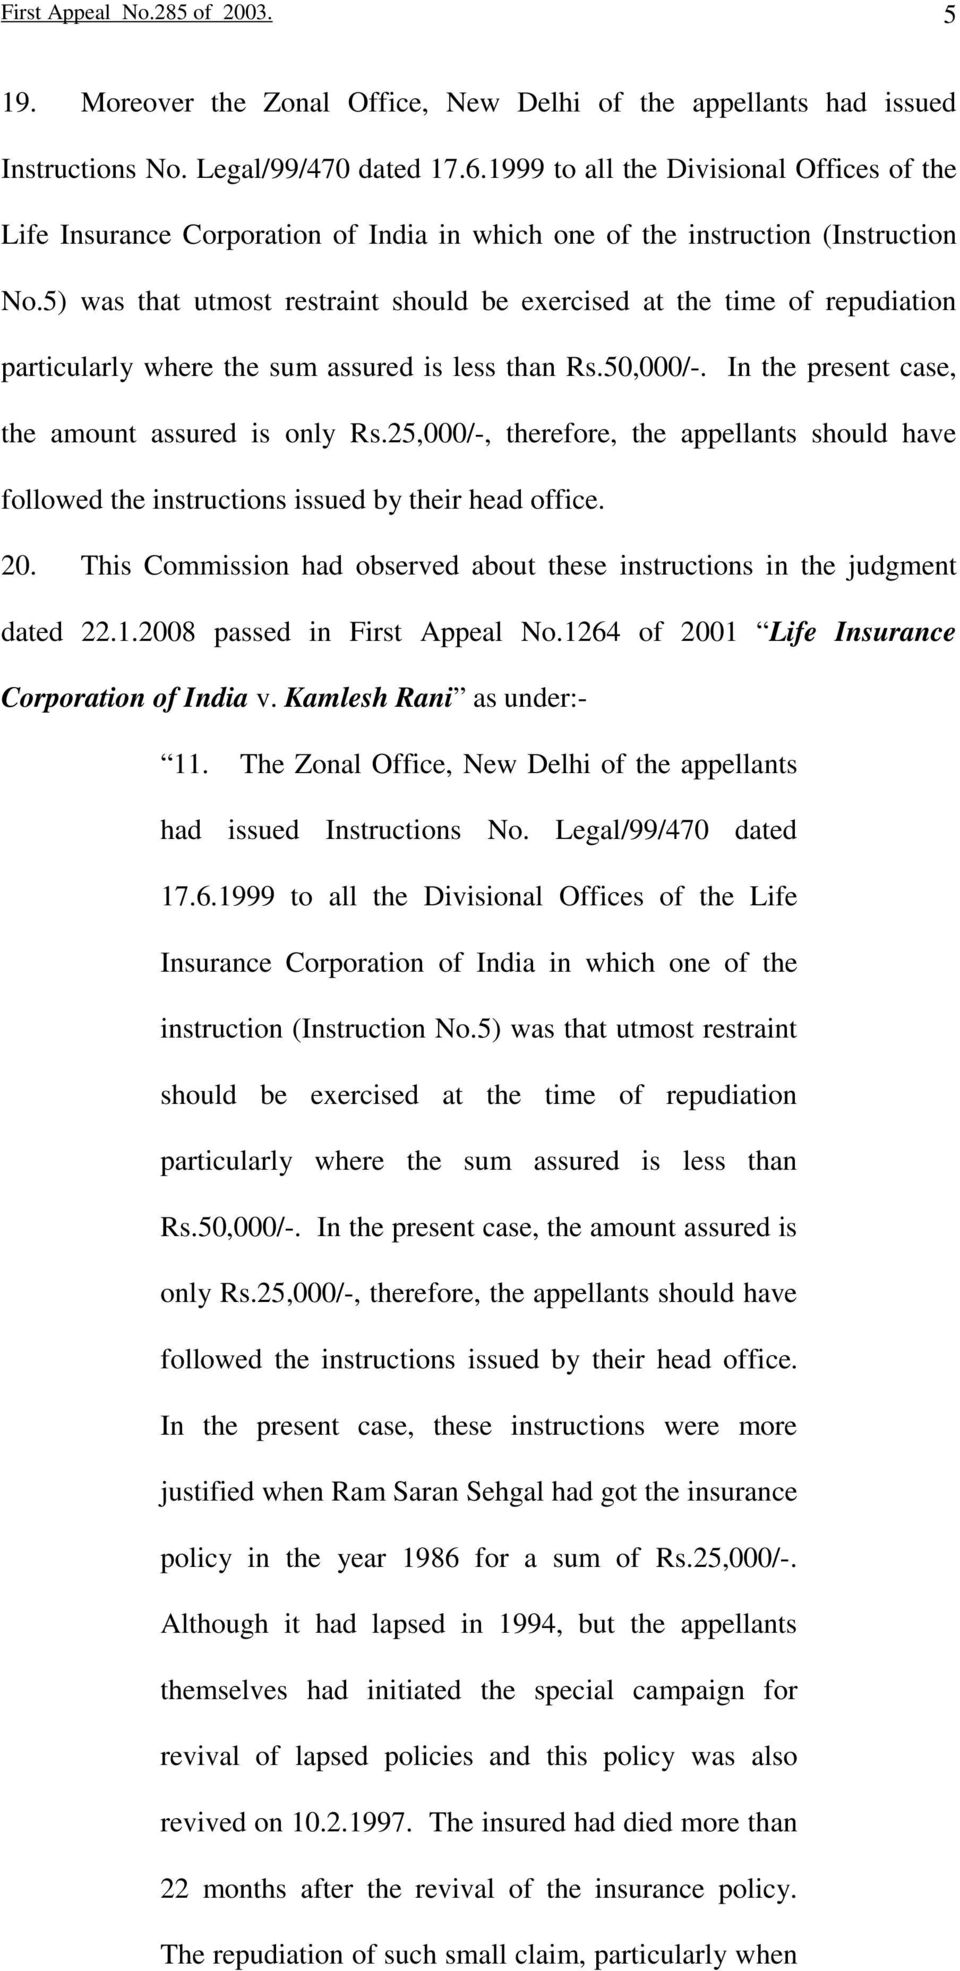 5) was that utmost restraint should be exercised at the time of repudiation particularly where the sum assured is less than Rs.50,000/-. In the present case, the amount assured is only Rs.